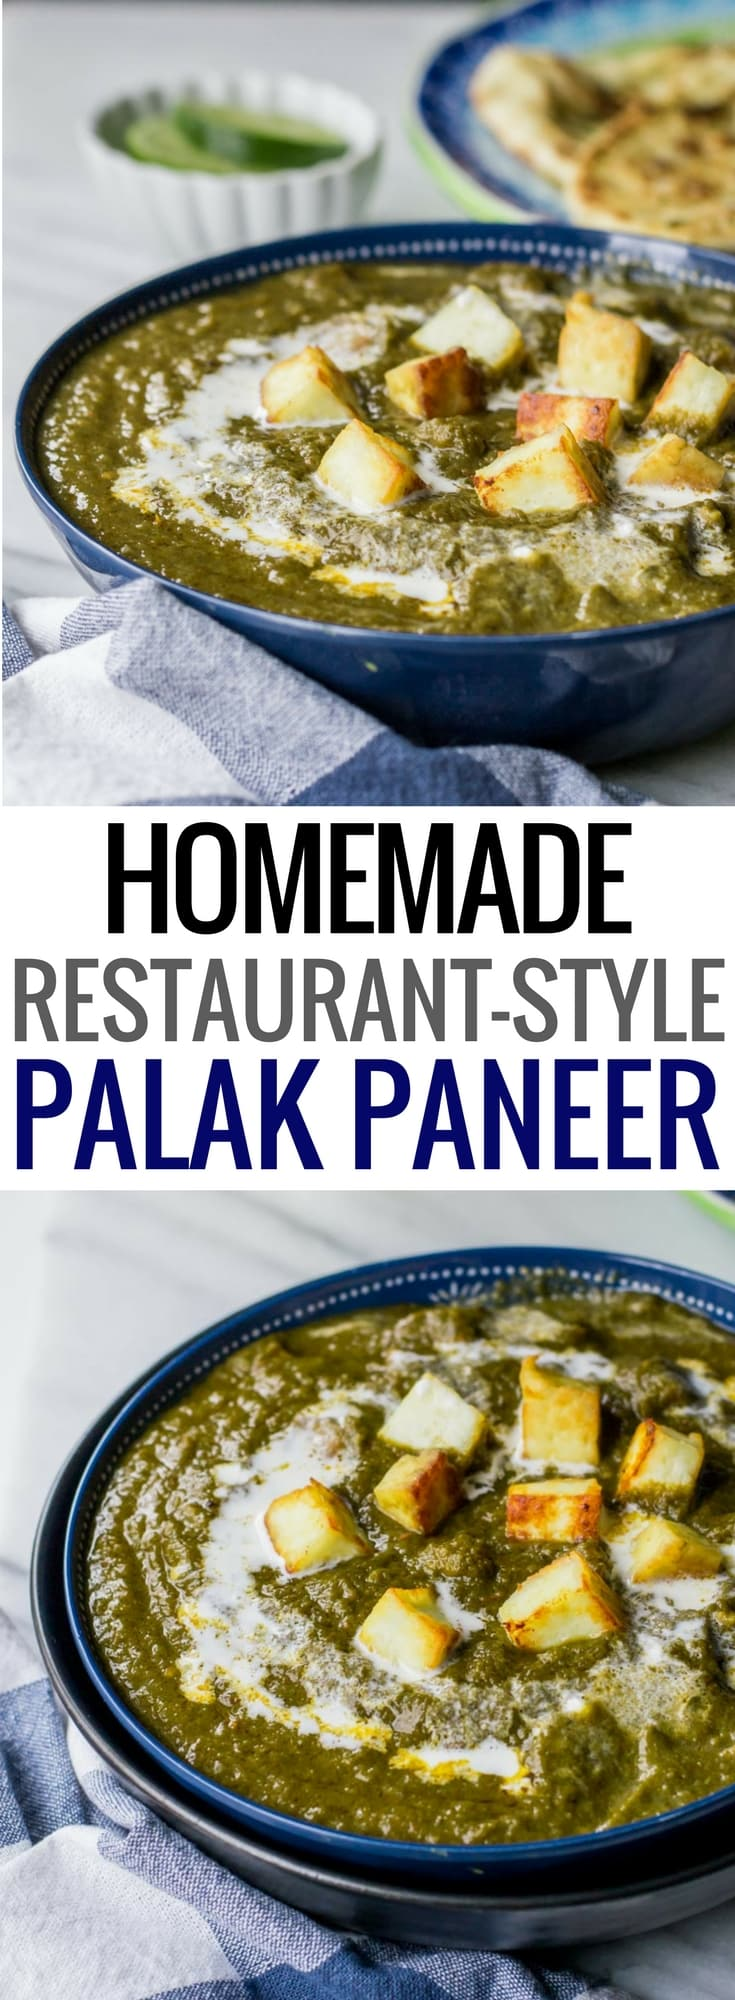 Restaurant style palak paneer recipe - This Indian vegetarian dish is popular with folks in India and abroad. Get this easy and healthy recipe to make restaurant style Palak Paneer (Spinach with cottage cheese) at home! Includes directions to make it in an Instant Pot as well. #InstantPotRecipe  #Indiancuisine #healthyindianrecipes #indianvegetarianrecipes #ethniccuisine #worldcuisine #indianfood